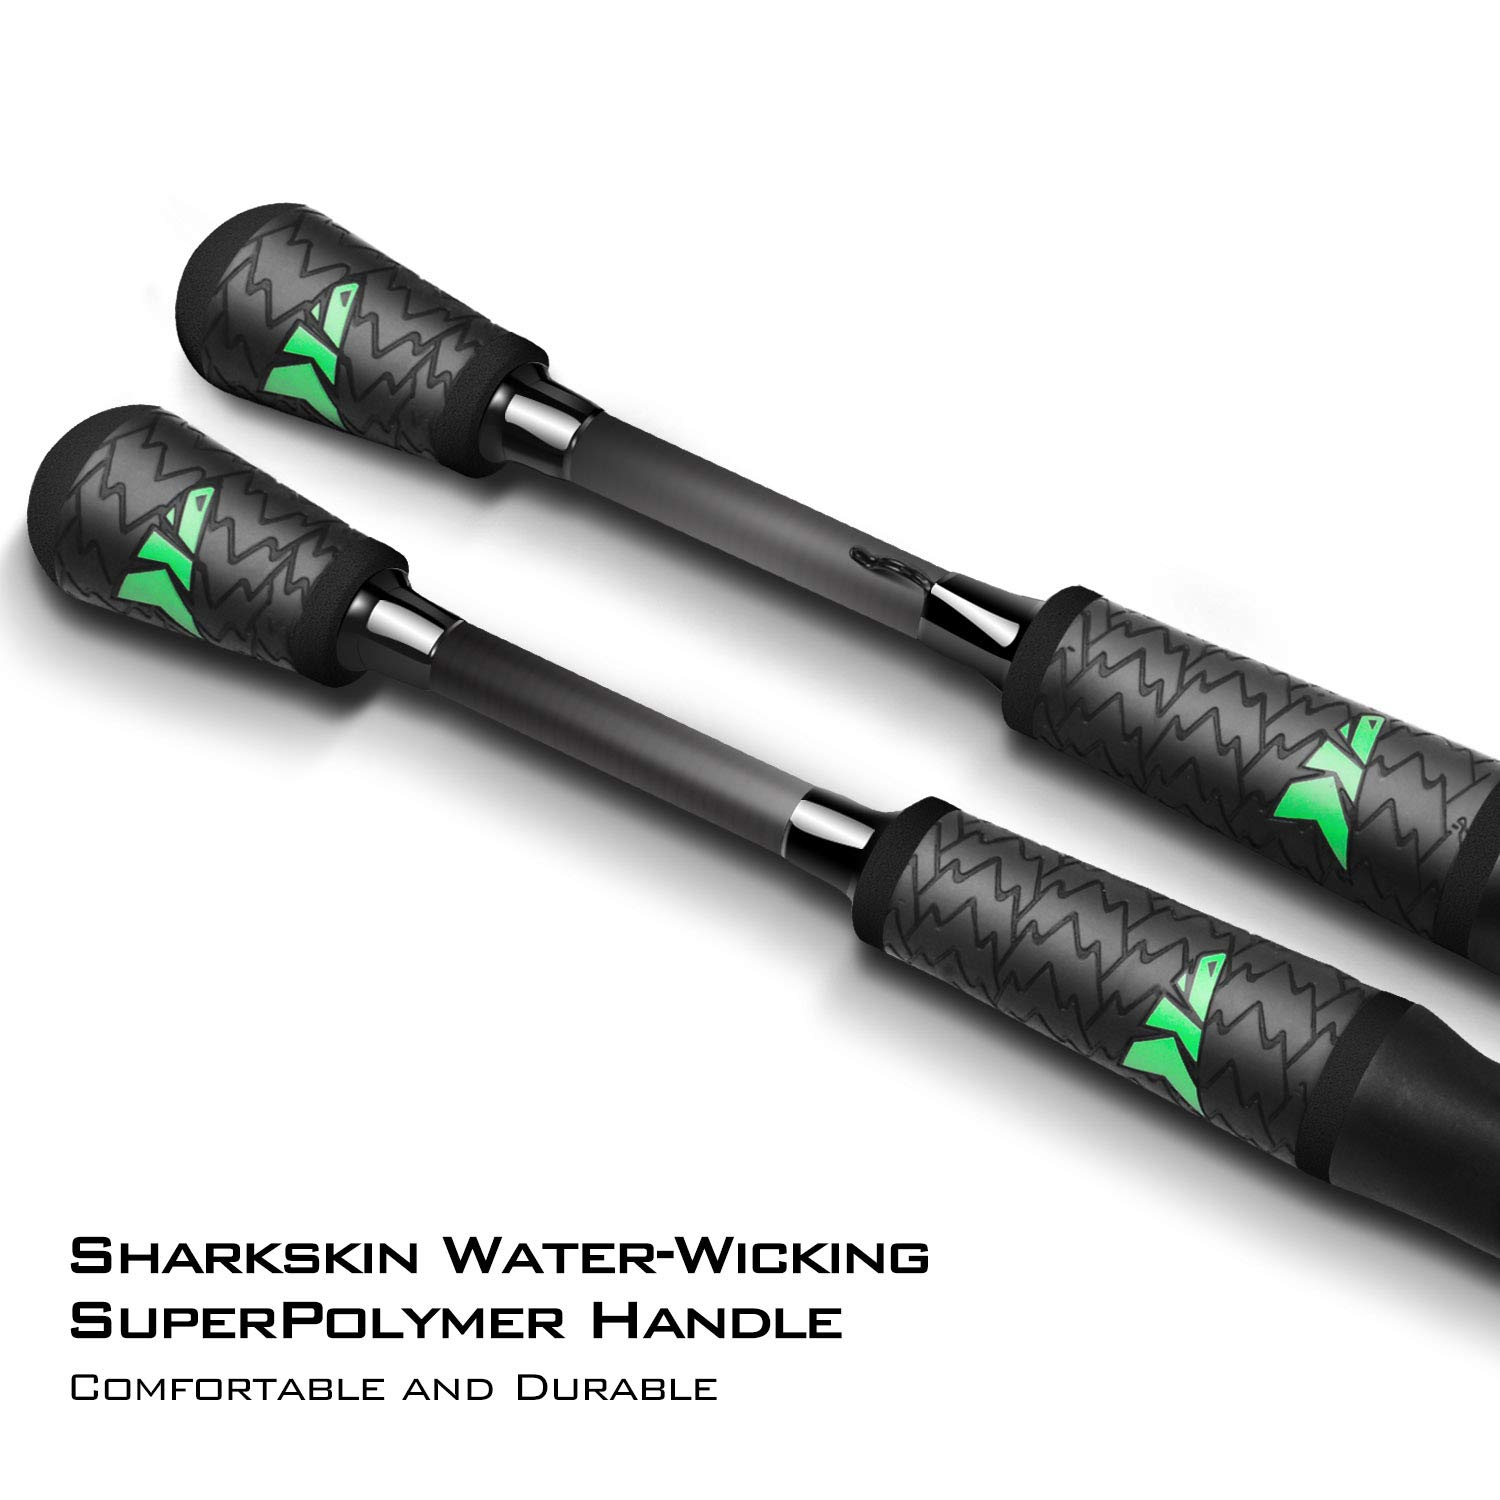 Ultra-Sensitive IM7 Carbon Fishing Rod Blanks American Tackle 2pc Bravo Reel Seat 2pc Designs Spinning Rods /& Casting Rods KastKing Resolute Fishing Rods American Tackle Guides